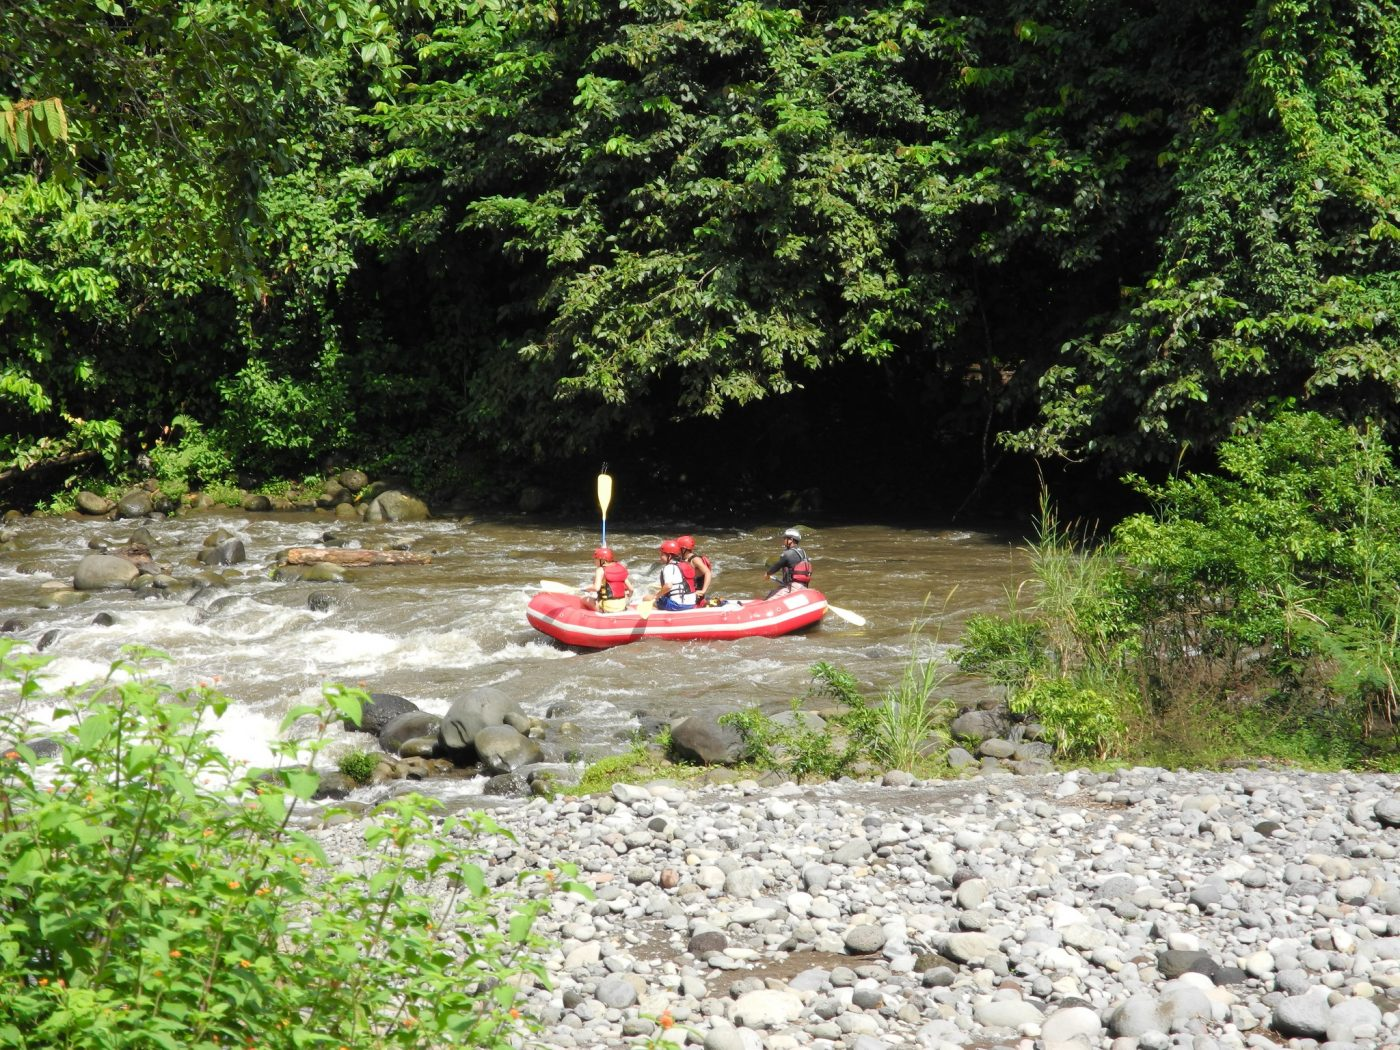 Rafting on Sarapiqui river. Photo by m.prinke via Flickr CC